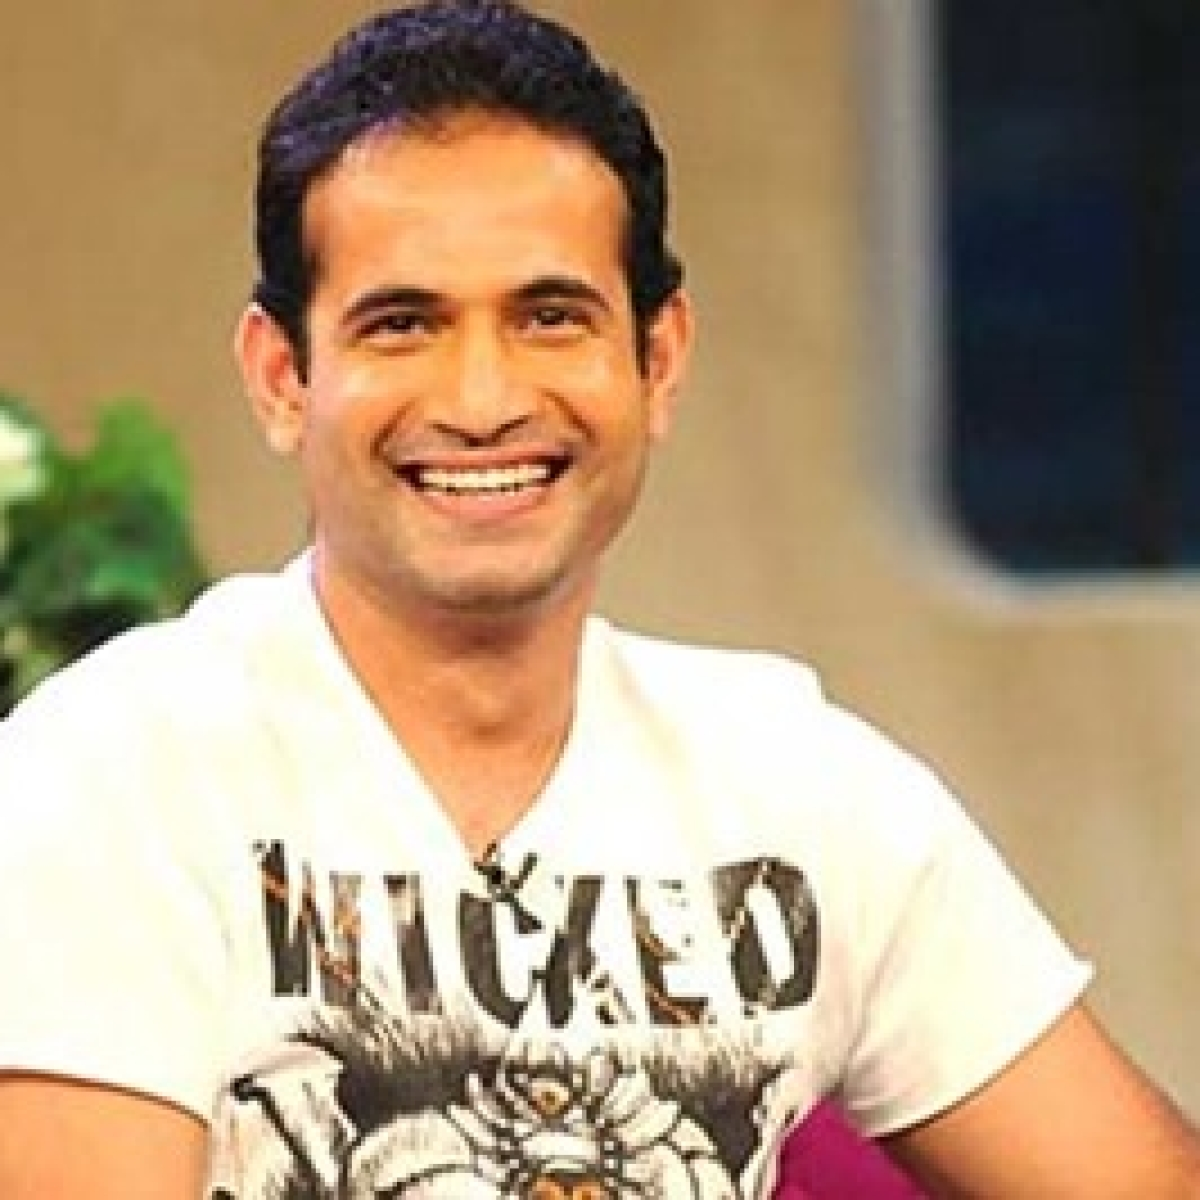 Sportspersons are expected to promote peace: Irfan Pathan on Imran Khan's UNGA speech